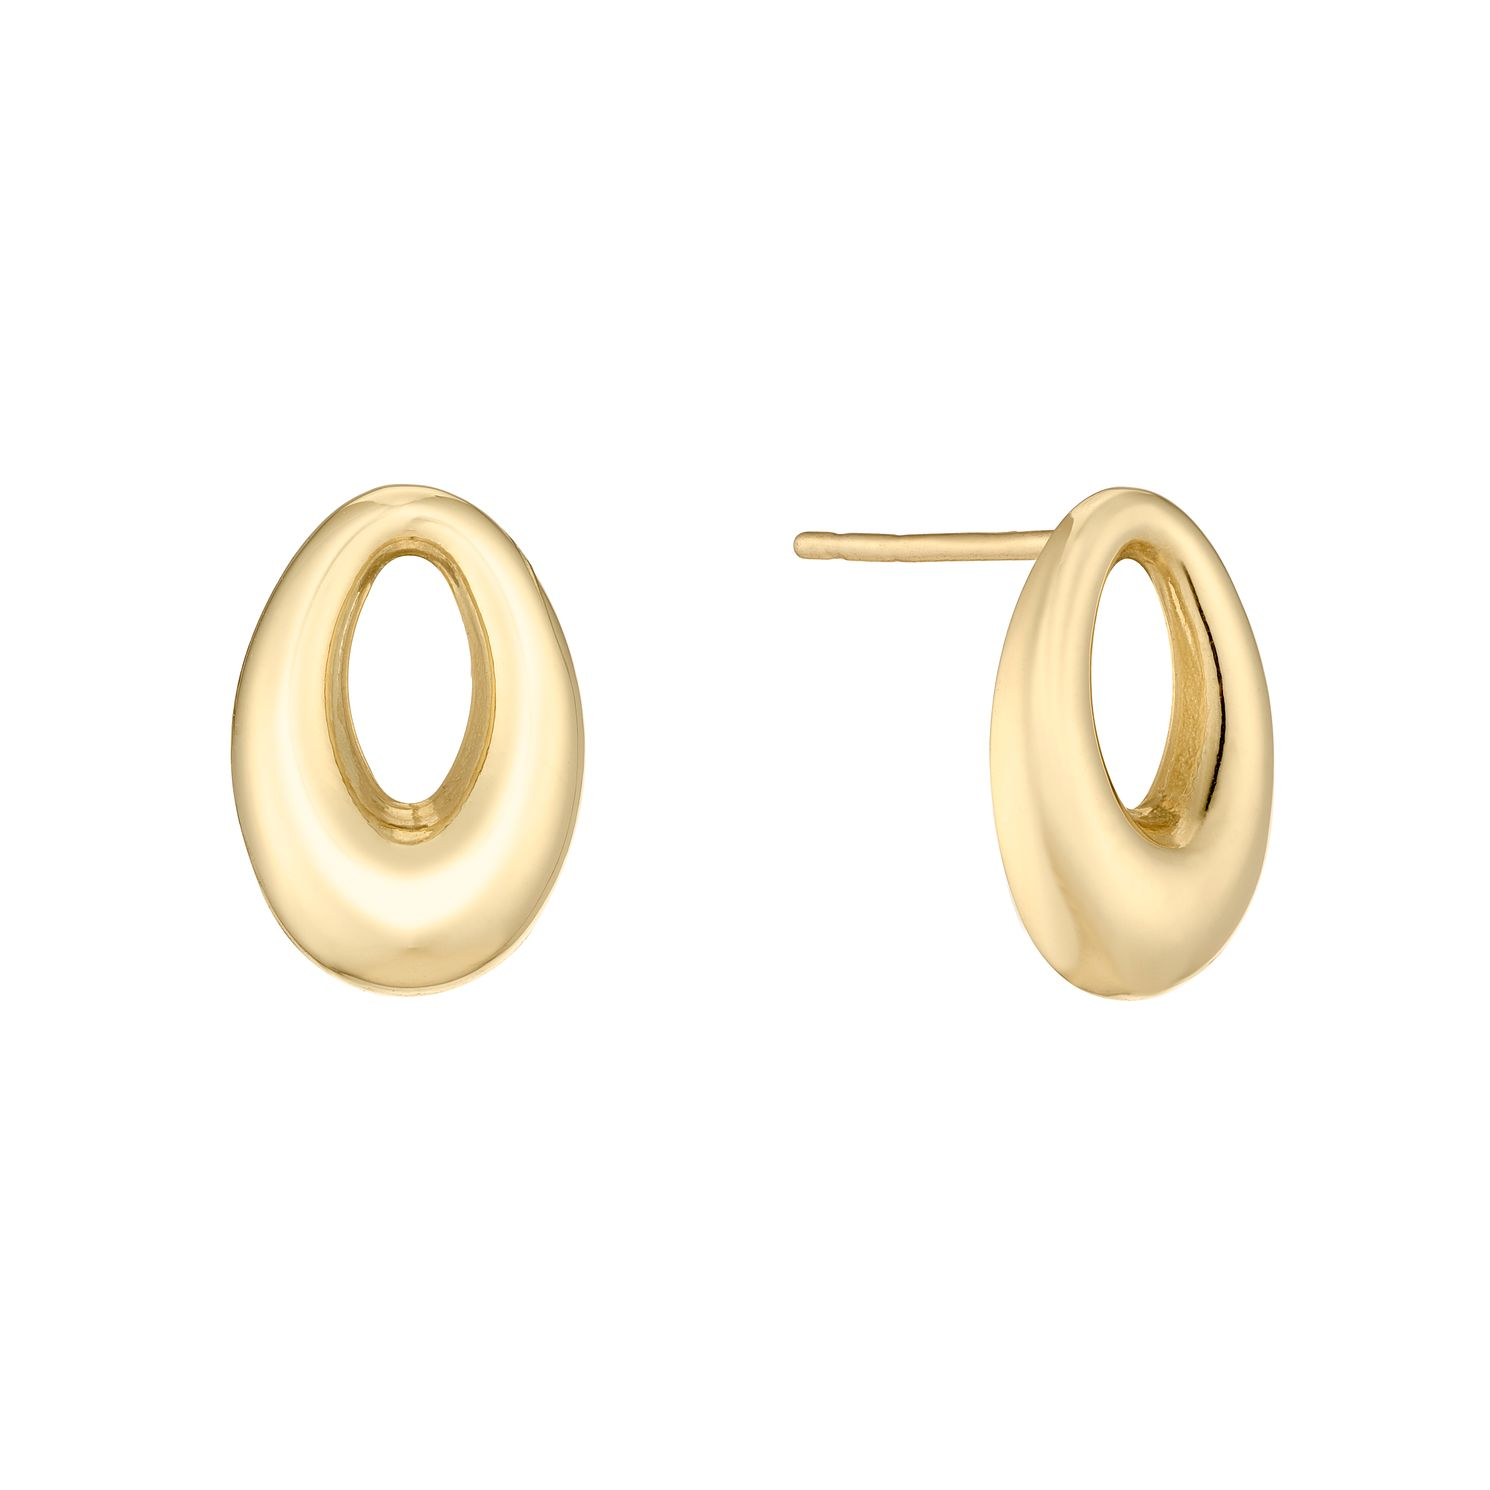 9ct Yellow Gold Open Oval Stud Earrings - Product number 5088011